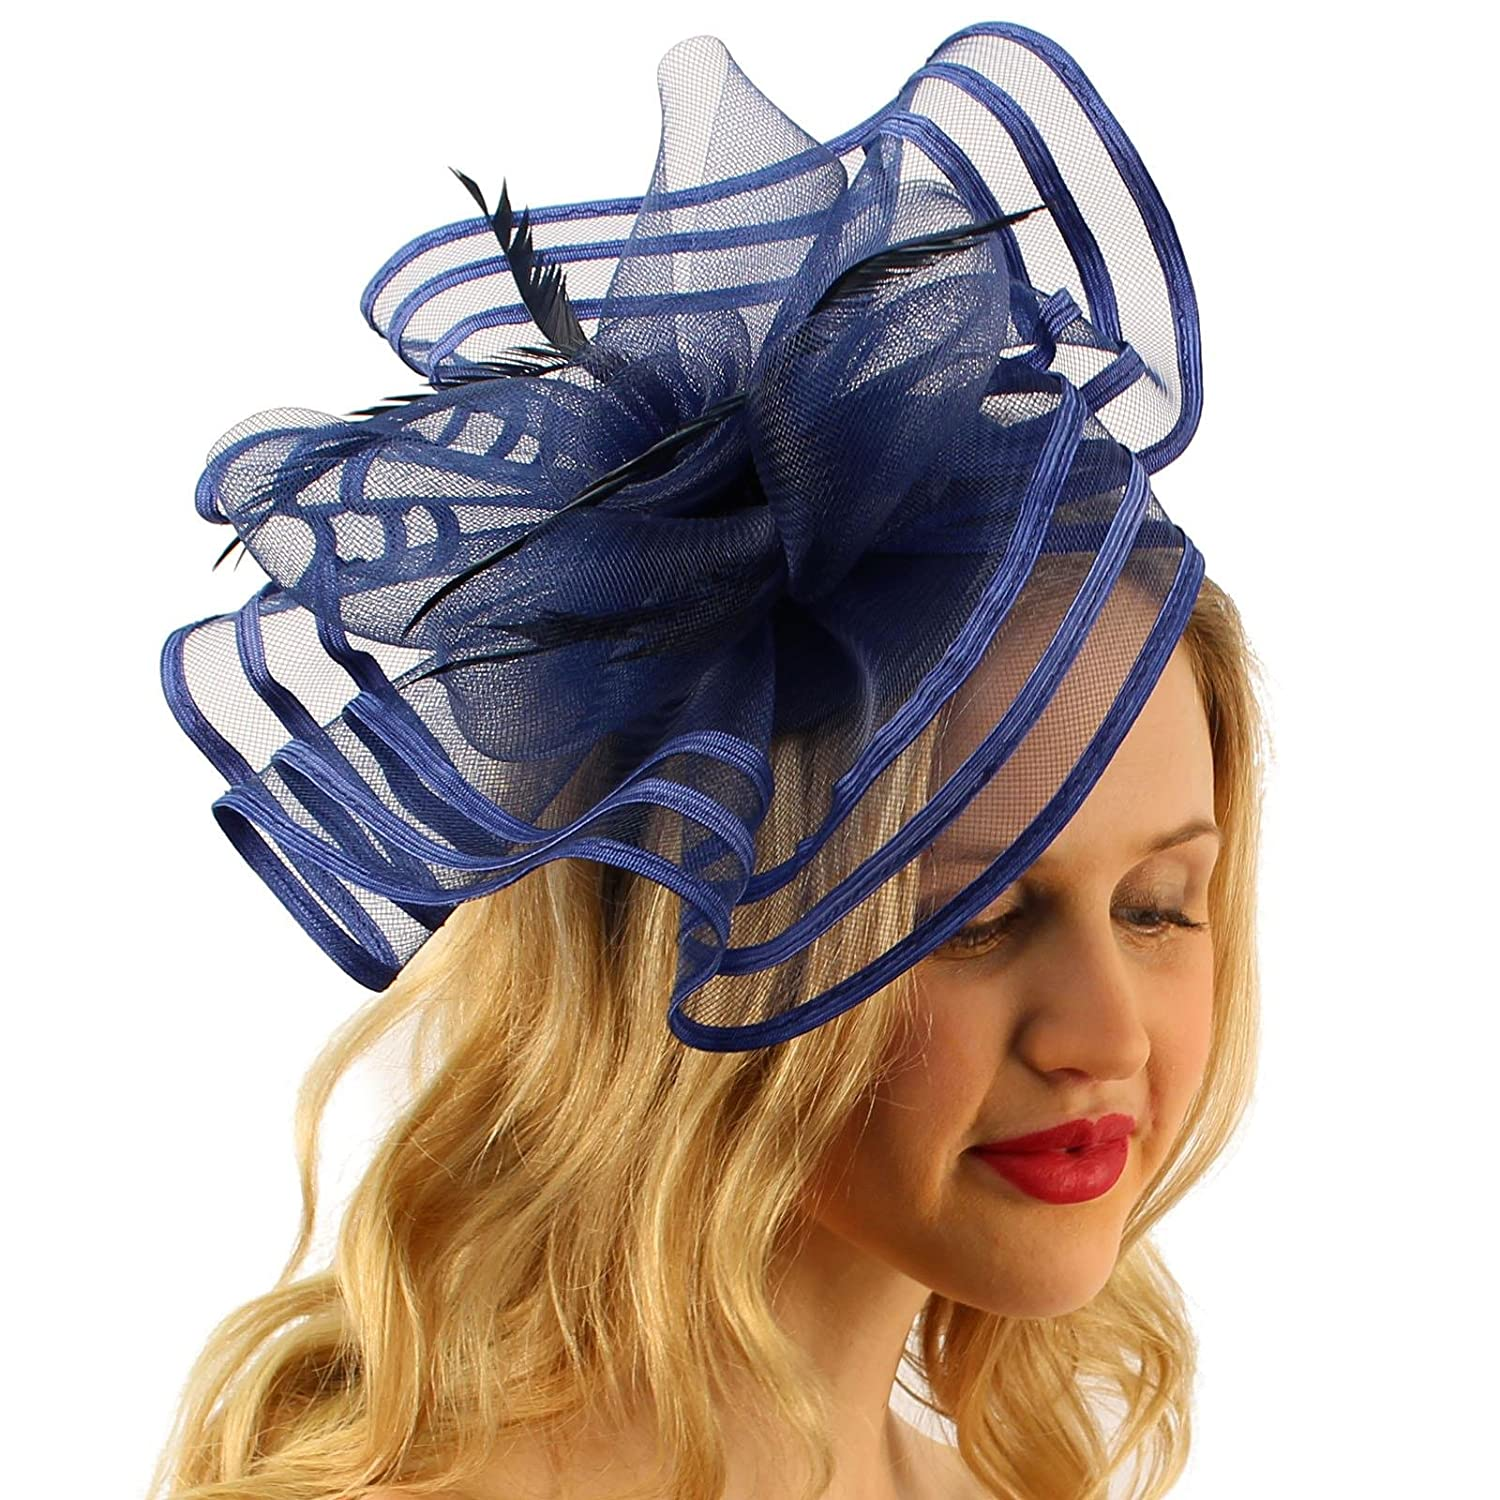 Floral Swirl Net Feathers Fascinators Headband Millinery Cocktail Derby  Black at Amazon Women s Clothing store  3c46770d39d0